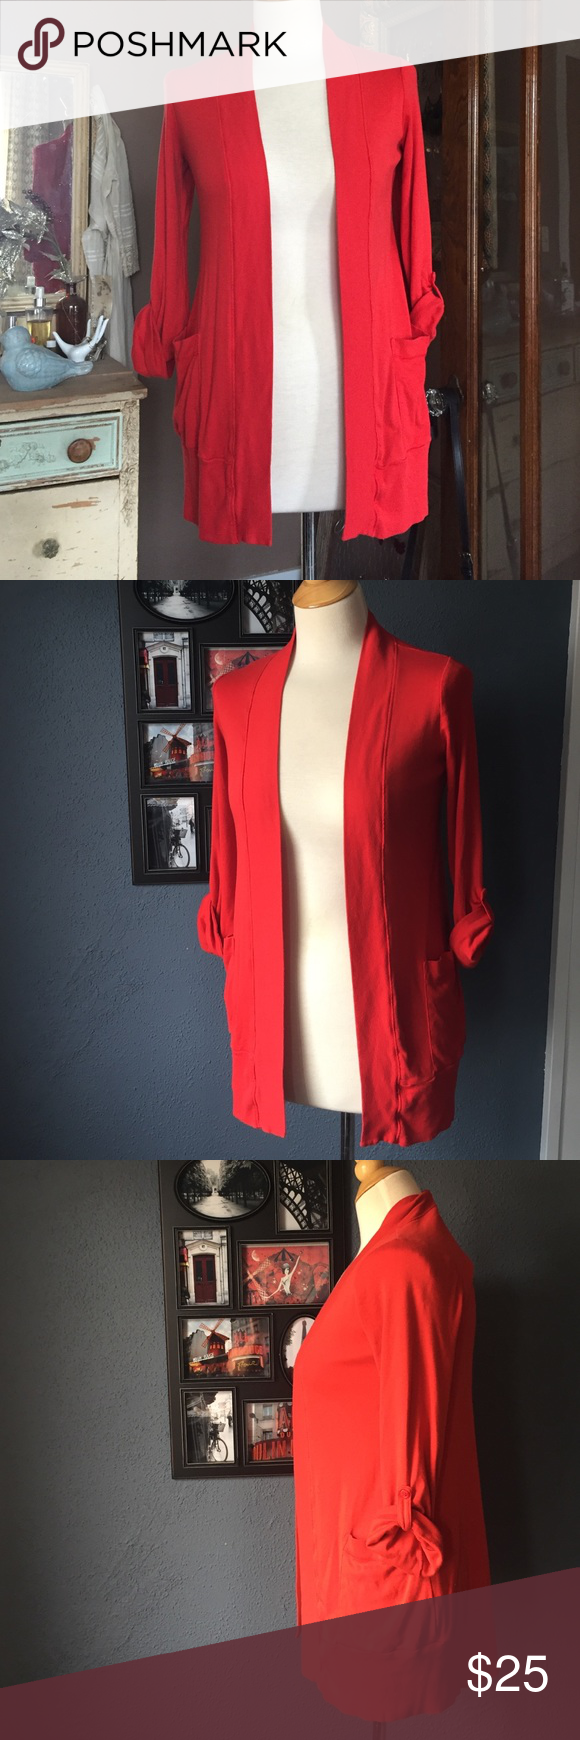 Splendid Cardigan With Tab Sleeves & Pockets S Beautiful Splendid brand bright tomato red pima and modal cotton jersey cardigan with adjustable tab sleeves and pockets. So soft and comfortable. Good quality! Made in America. Worn a handful of times, excellent condition overall with no snags, stains, or holes. From a non-smoking pet-free home. Size small, runs slightly oversized / boyfriend fit. Fits a 4-8 very well. splendid Sweaters Cardigans